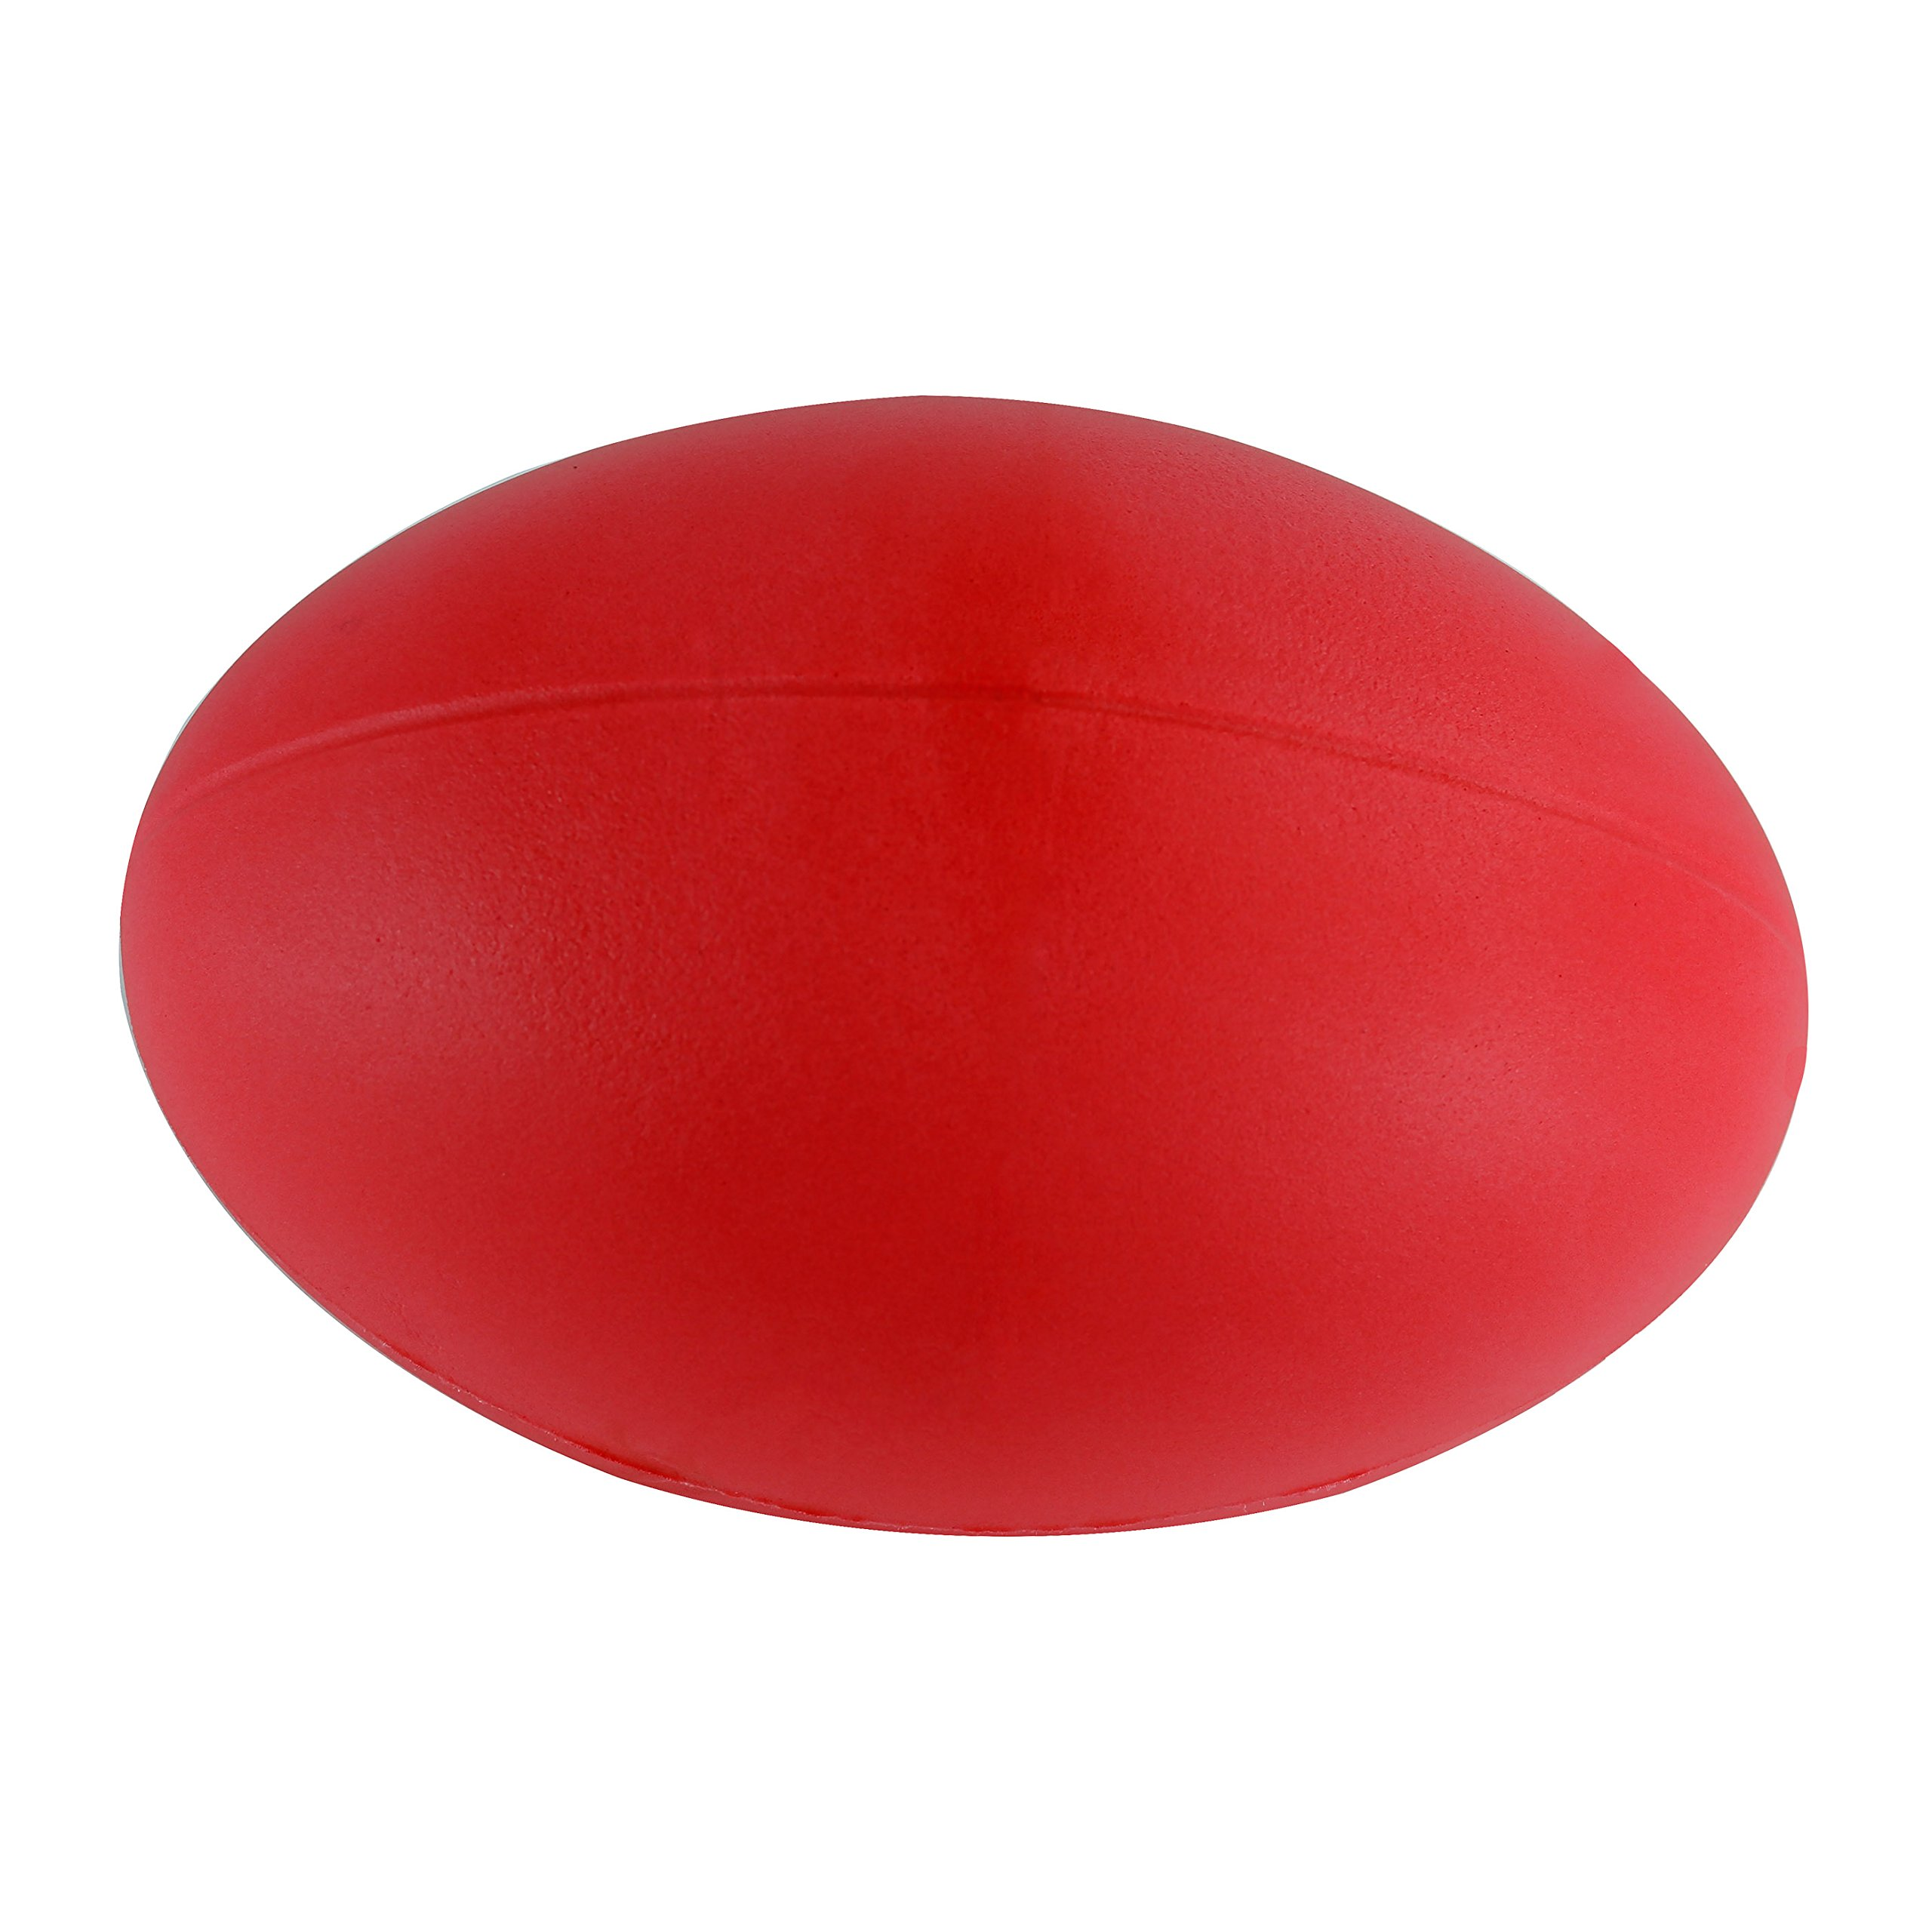 First-Play Foam Rugby Ball, Red